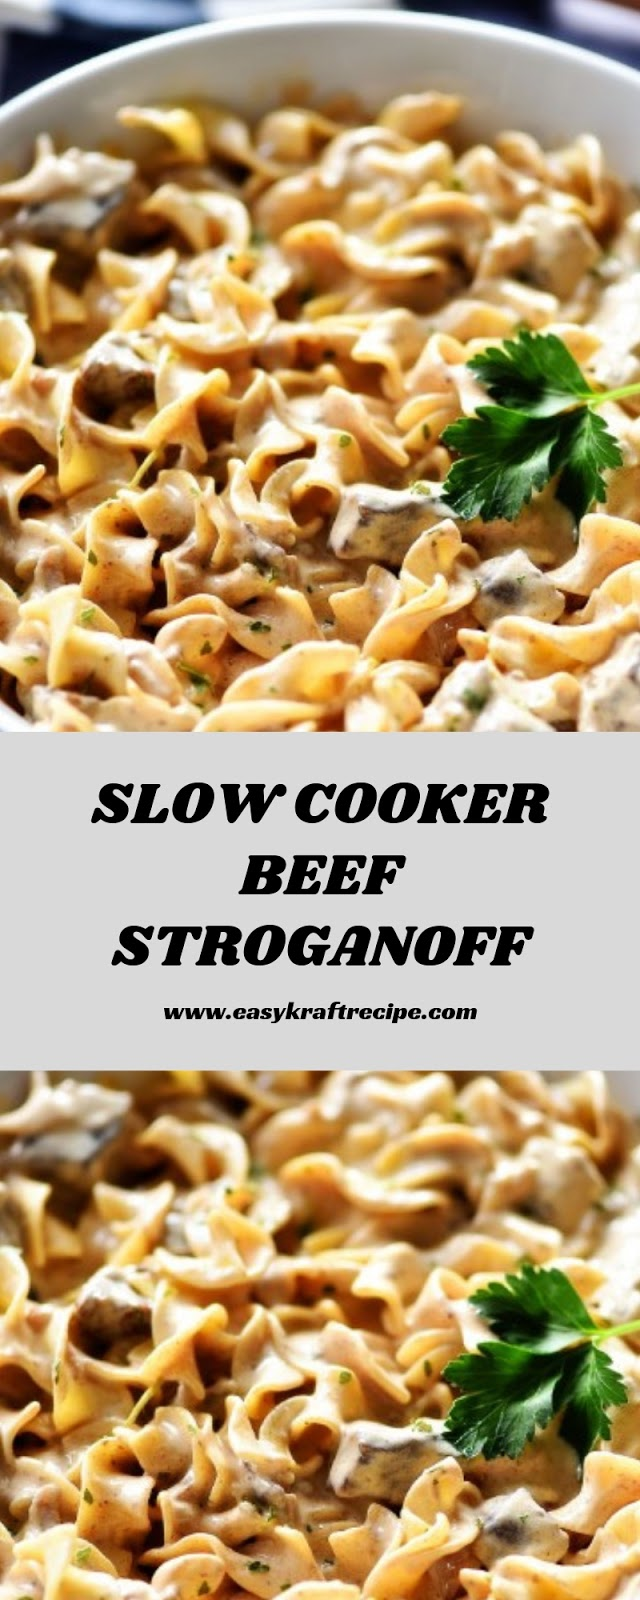 SLOW COOKER BEEF STROGAN0FF